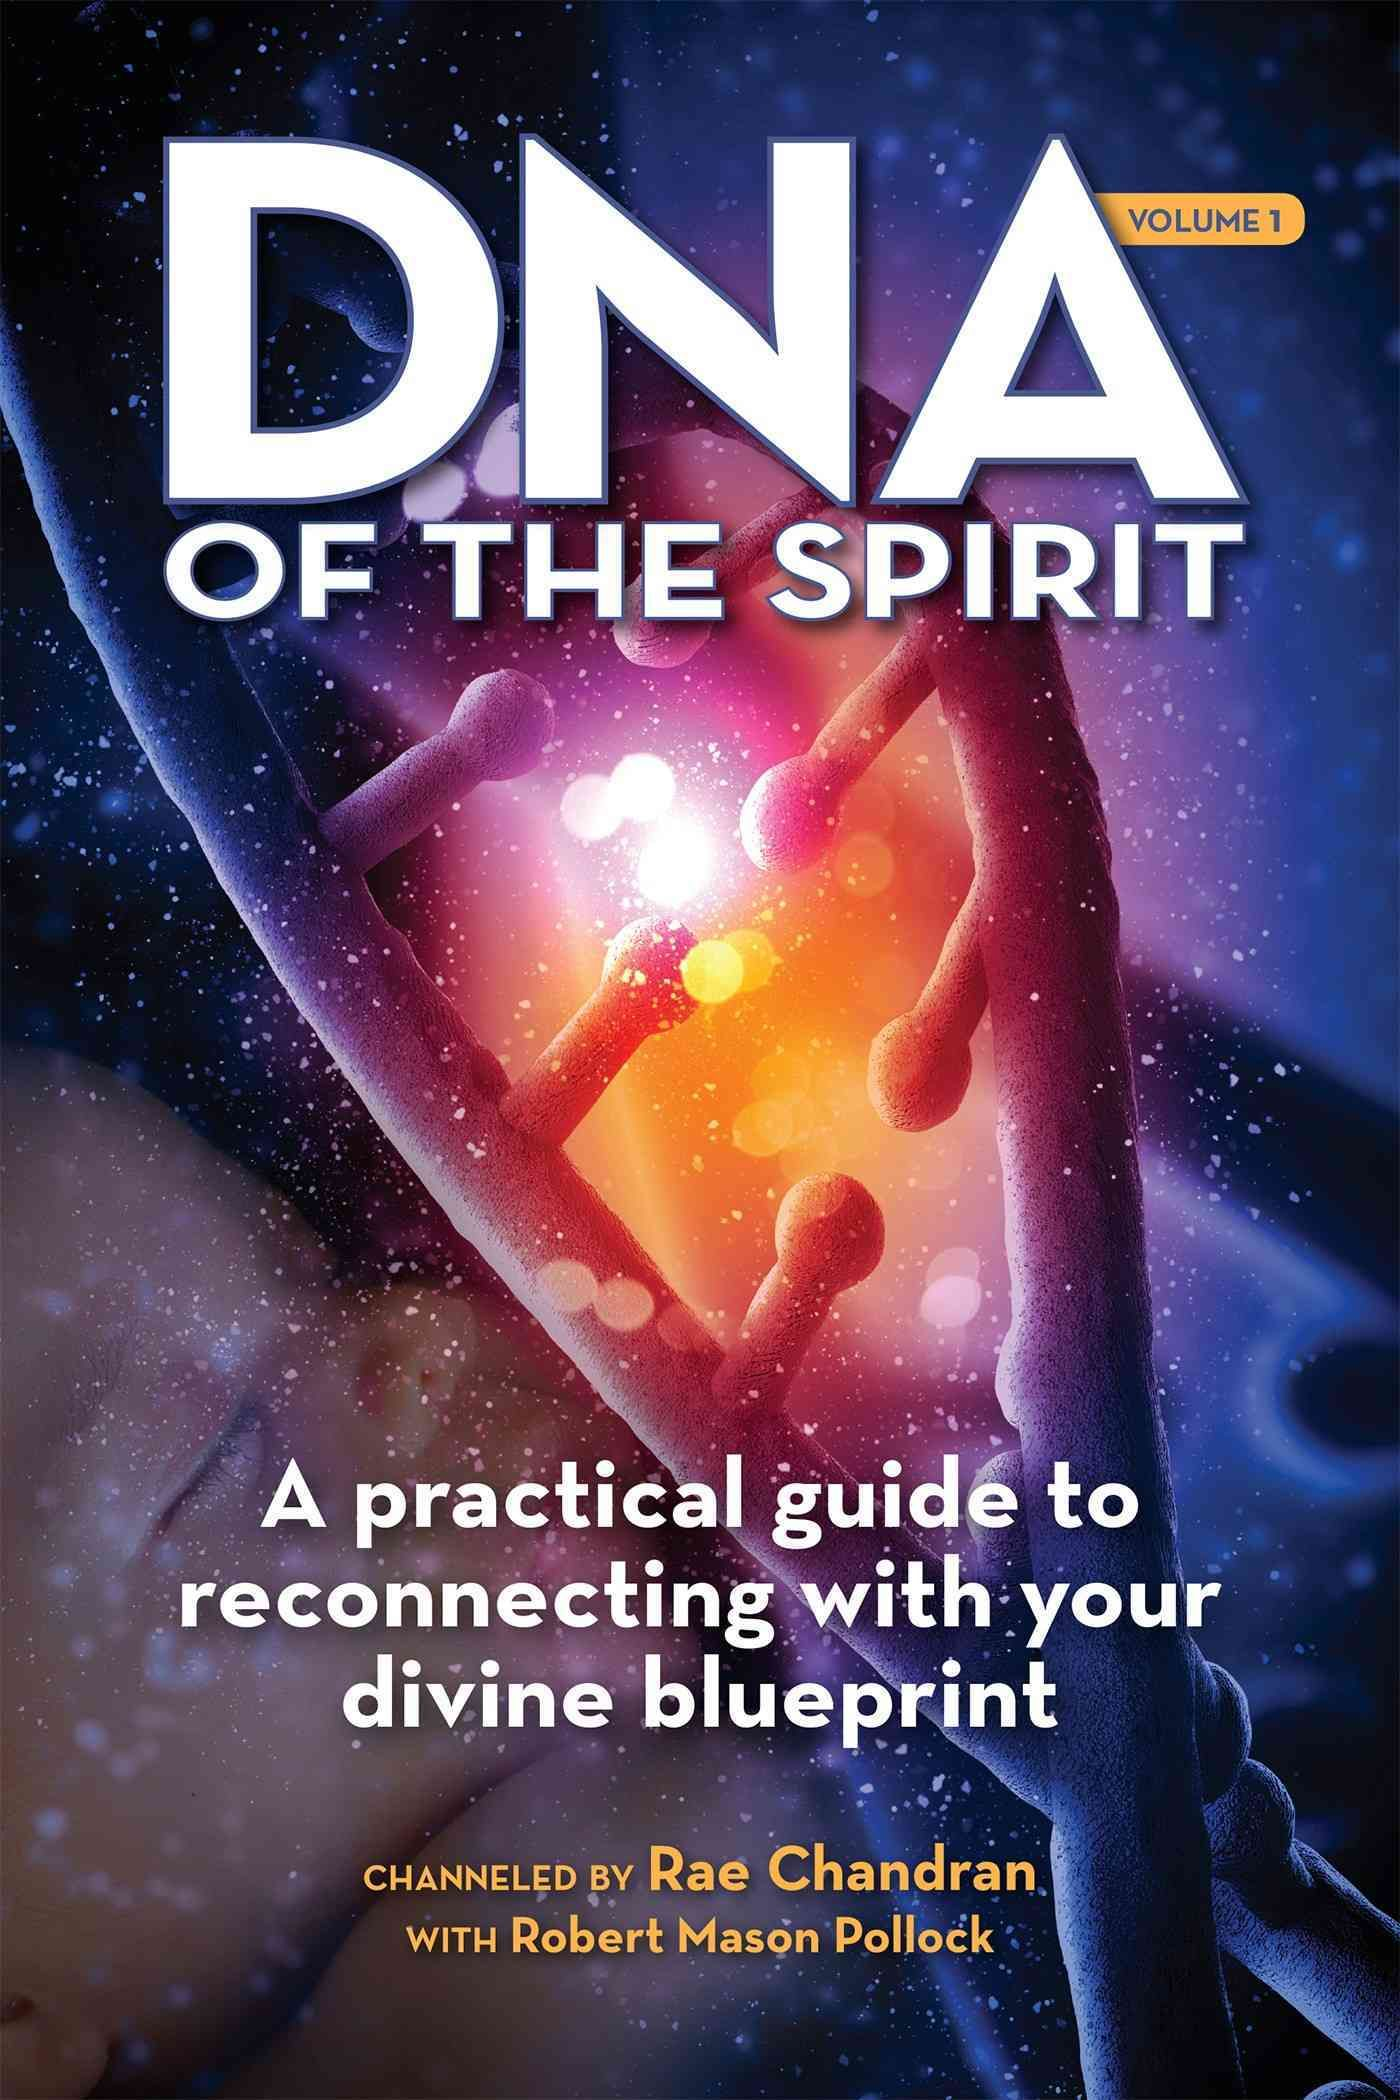 Dna of the spirit a practical guide to reconnecting with your dna of the spirit a practical guide to reconnecting with your divine blueprint malvernweather Choice Image